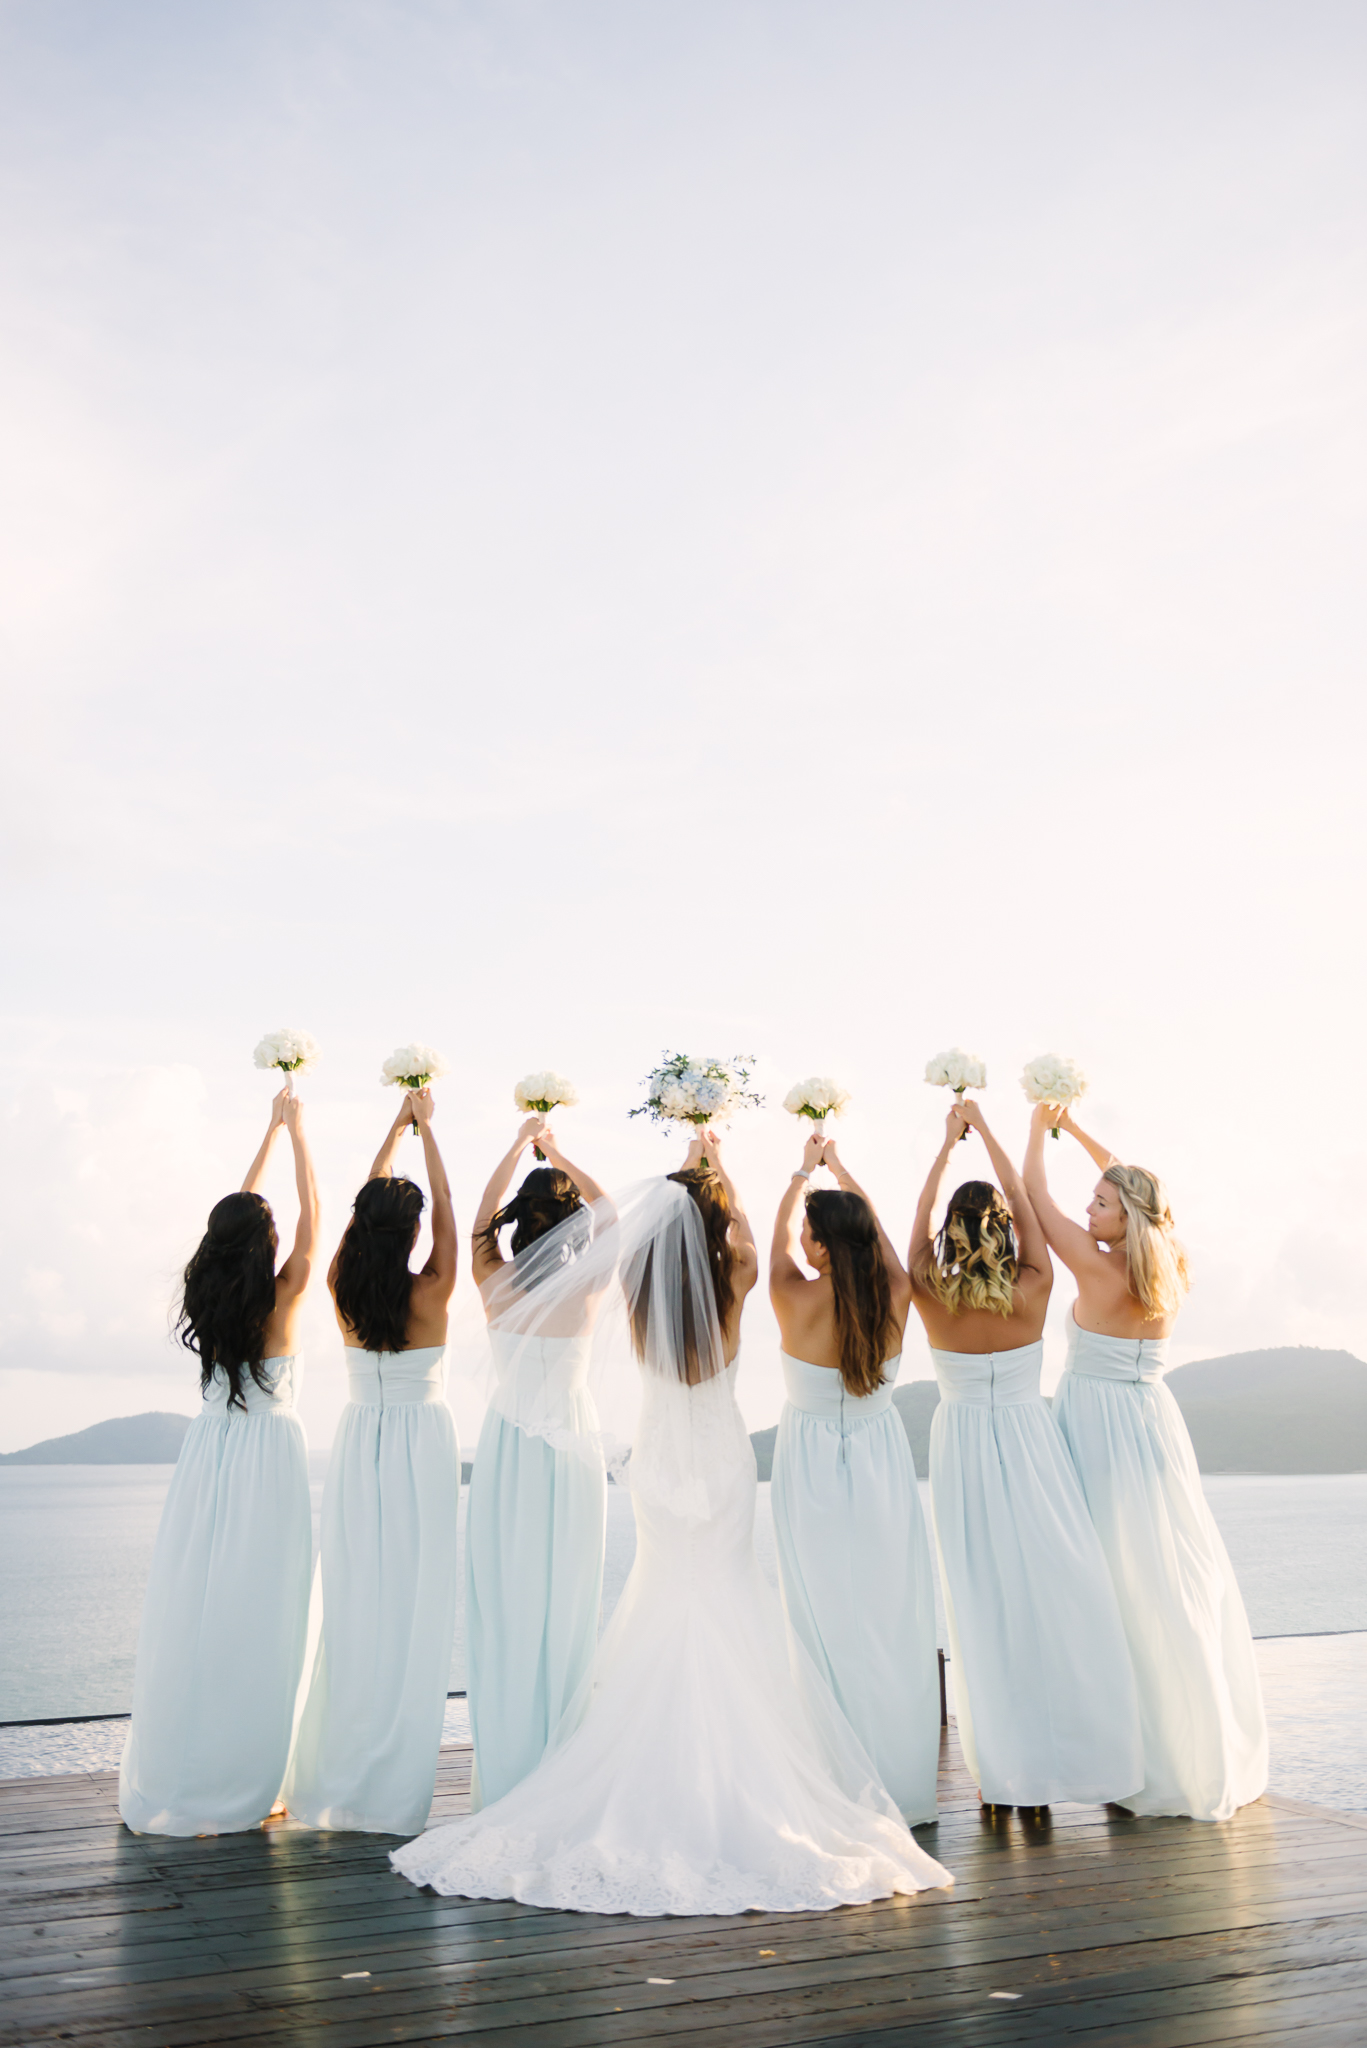 bridesmaids - photo by DarinImages http://ruffledblog.com/this-bride-is-sharing-all-you-need-to-know-about-a-destination-wedding-in-thailand